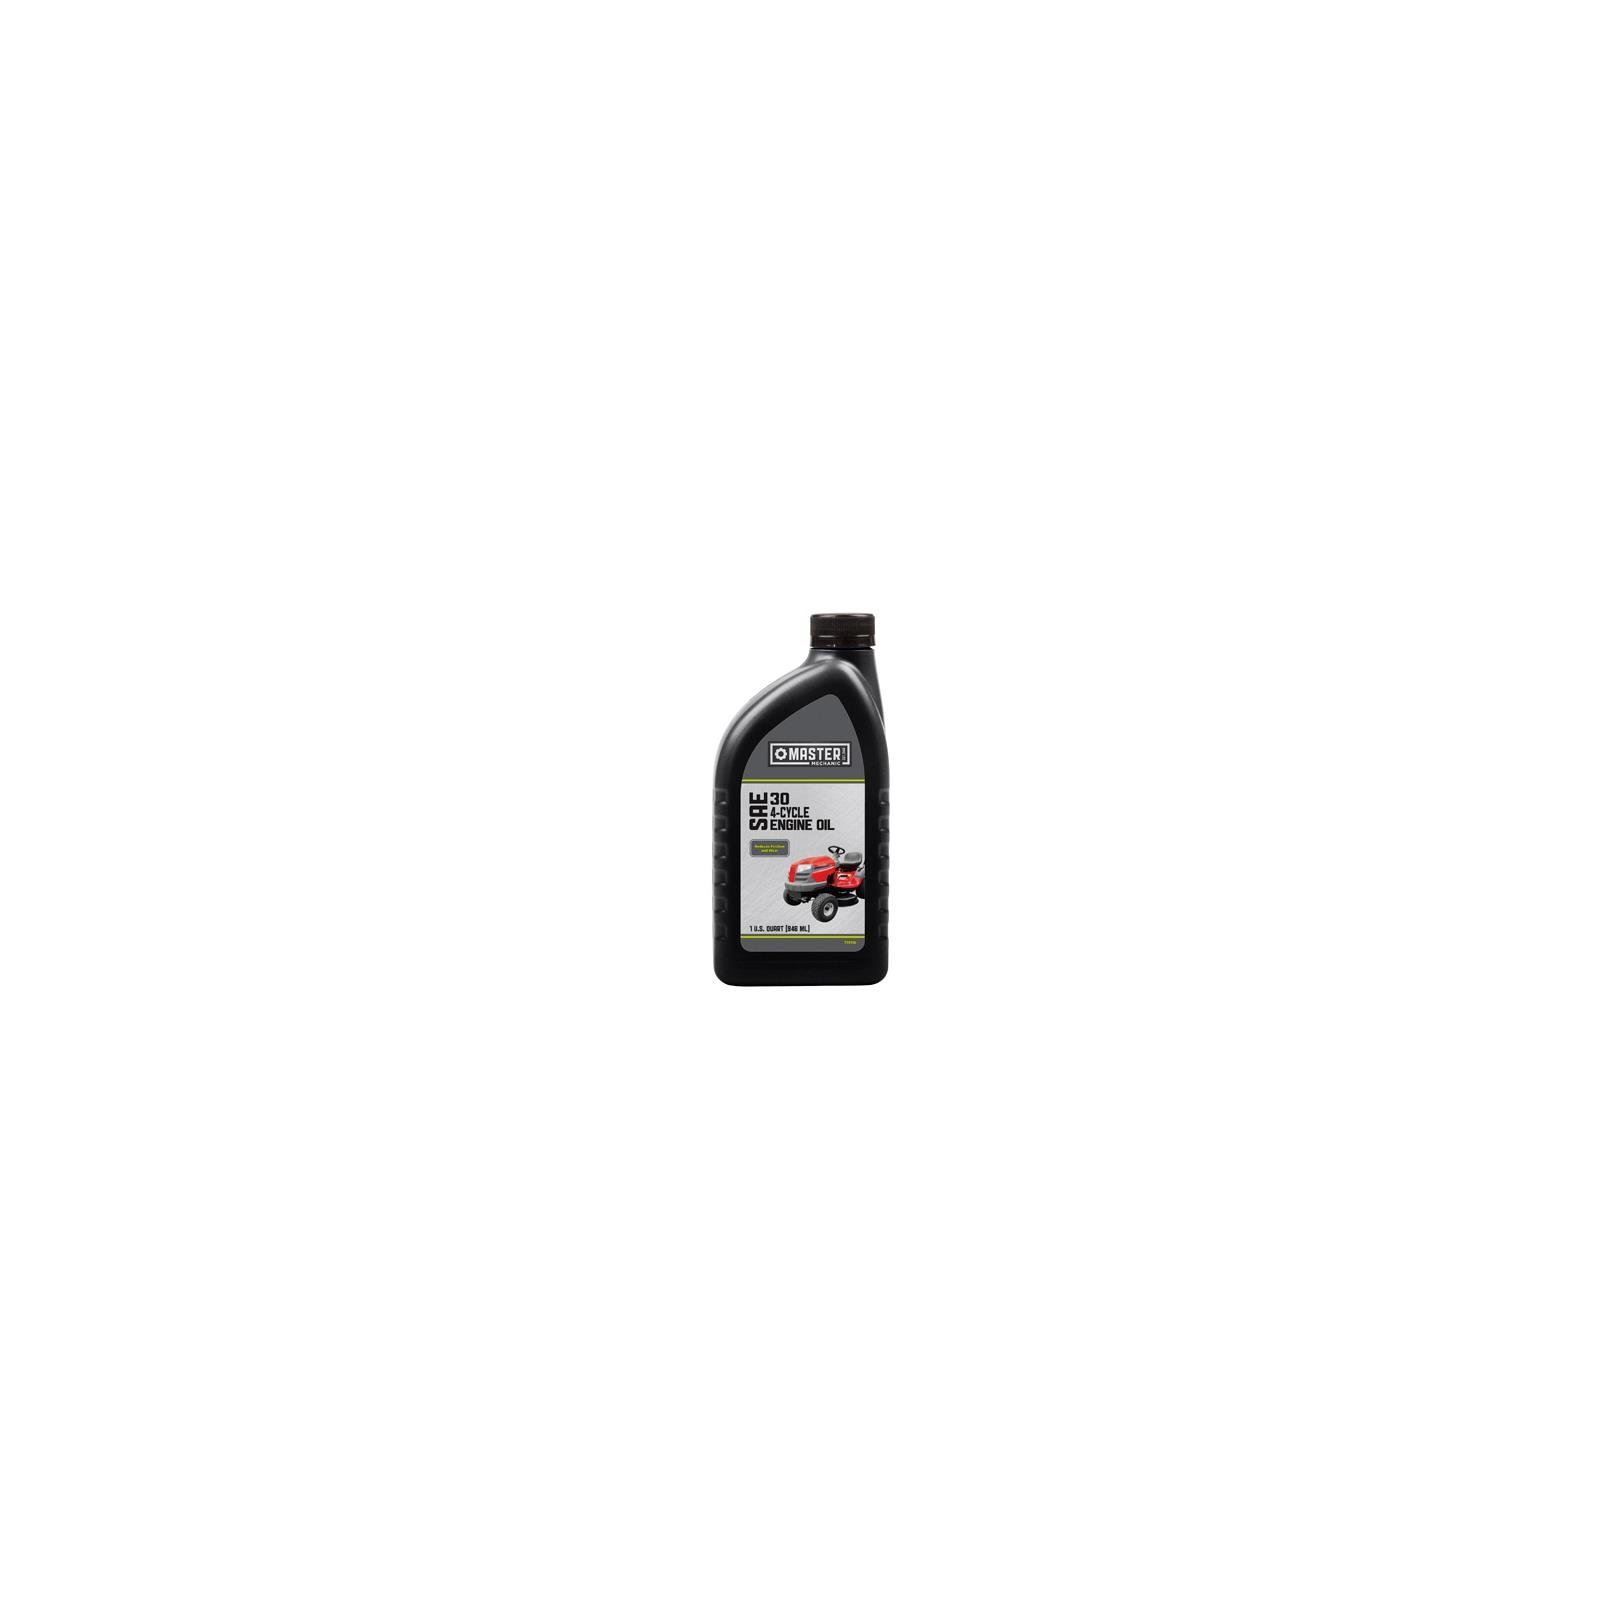 Olympic Oil 597575 Small Engine Oil, 4-Cycle, SAE30, 1-Qt. - Quantity 48